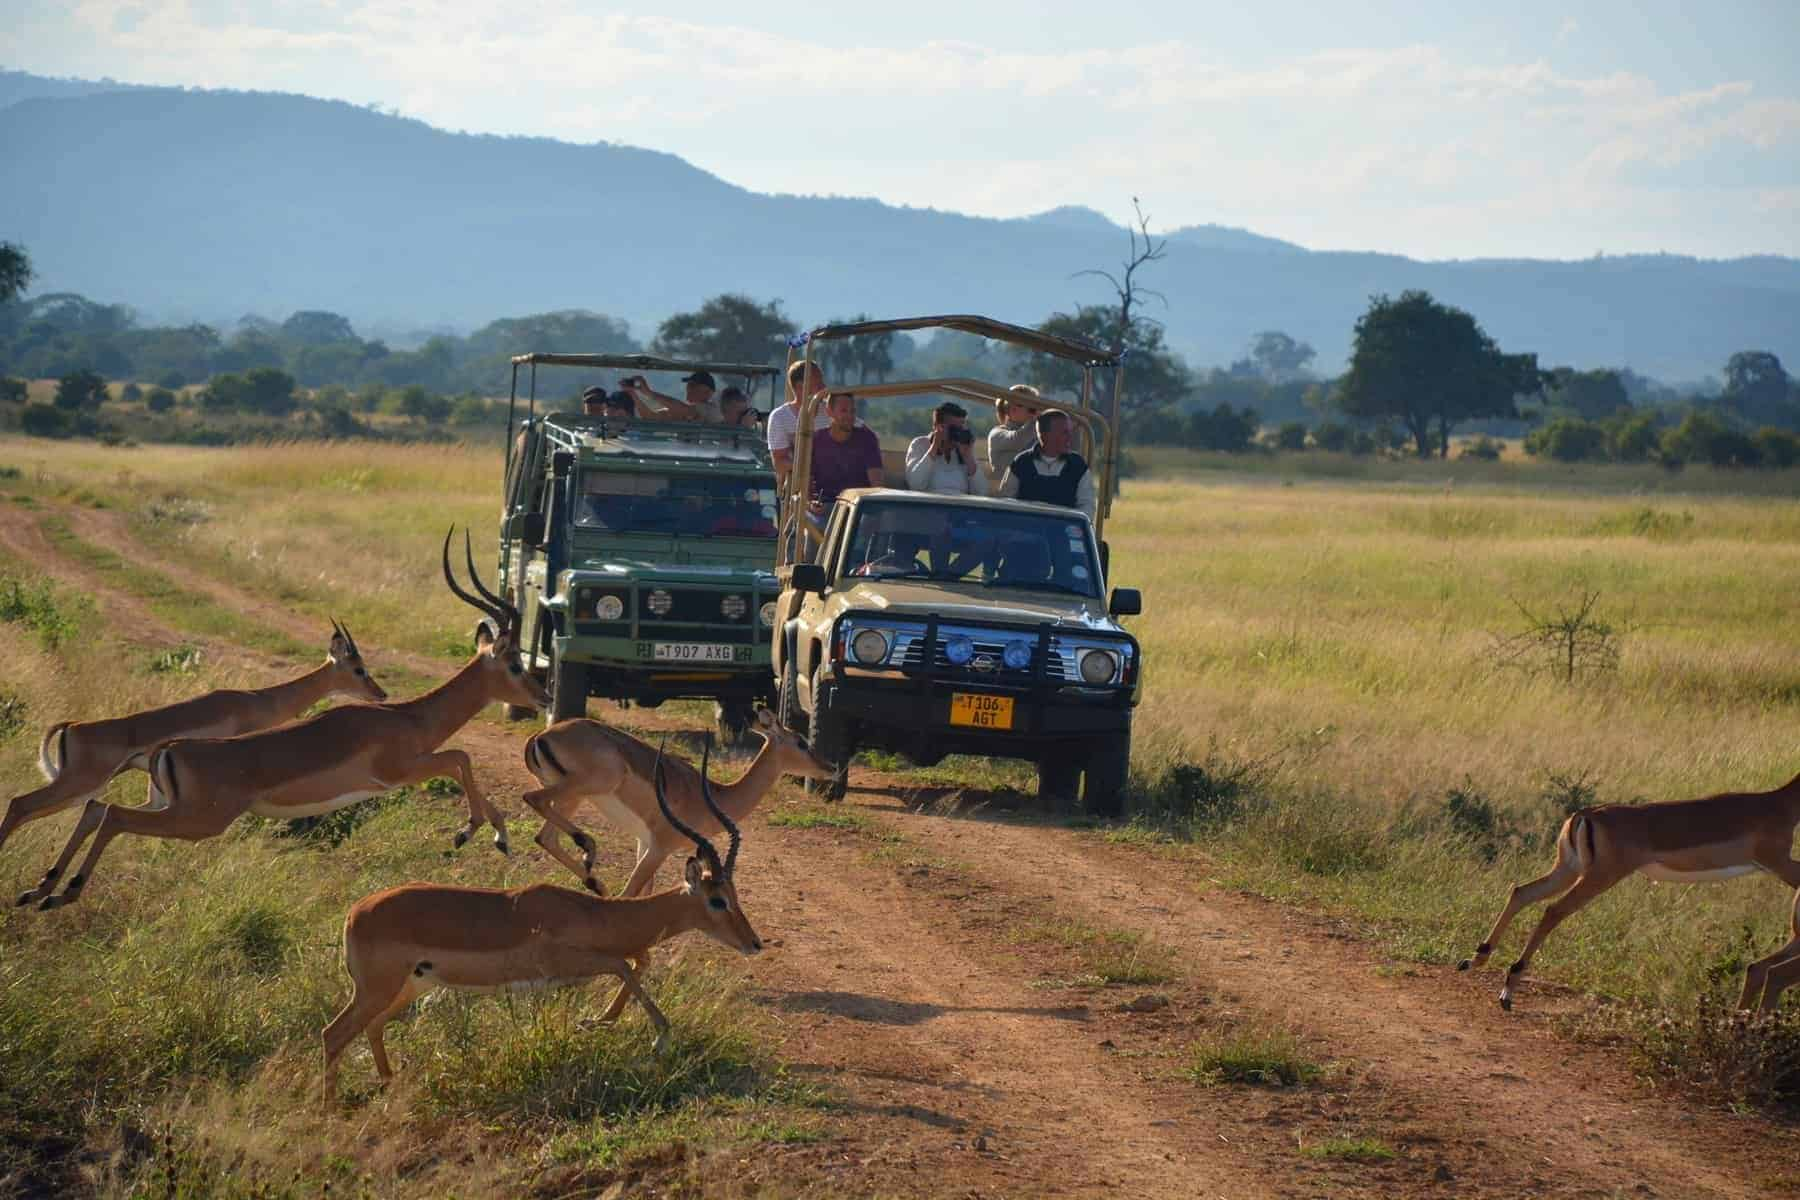 The Mikumi National Park is a national park in Mikumi, near Morogoro, Tanzania. The Mikumi is bordered to the south with the Selous Game Reserve, the two areas forming a unique ecosystem